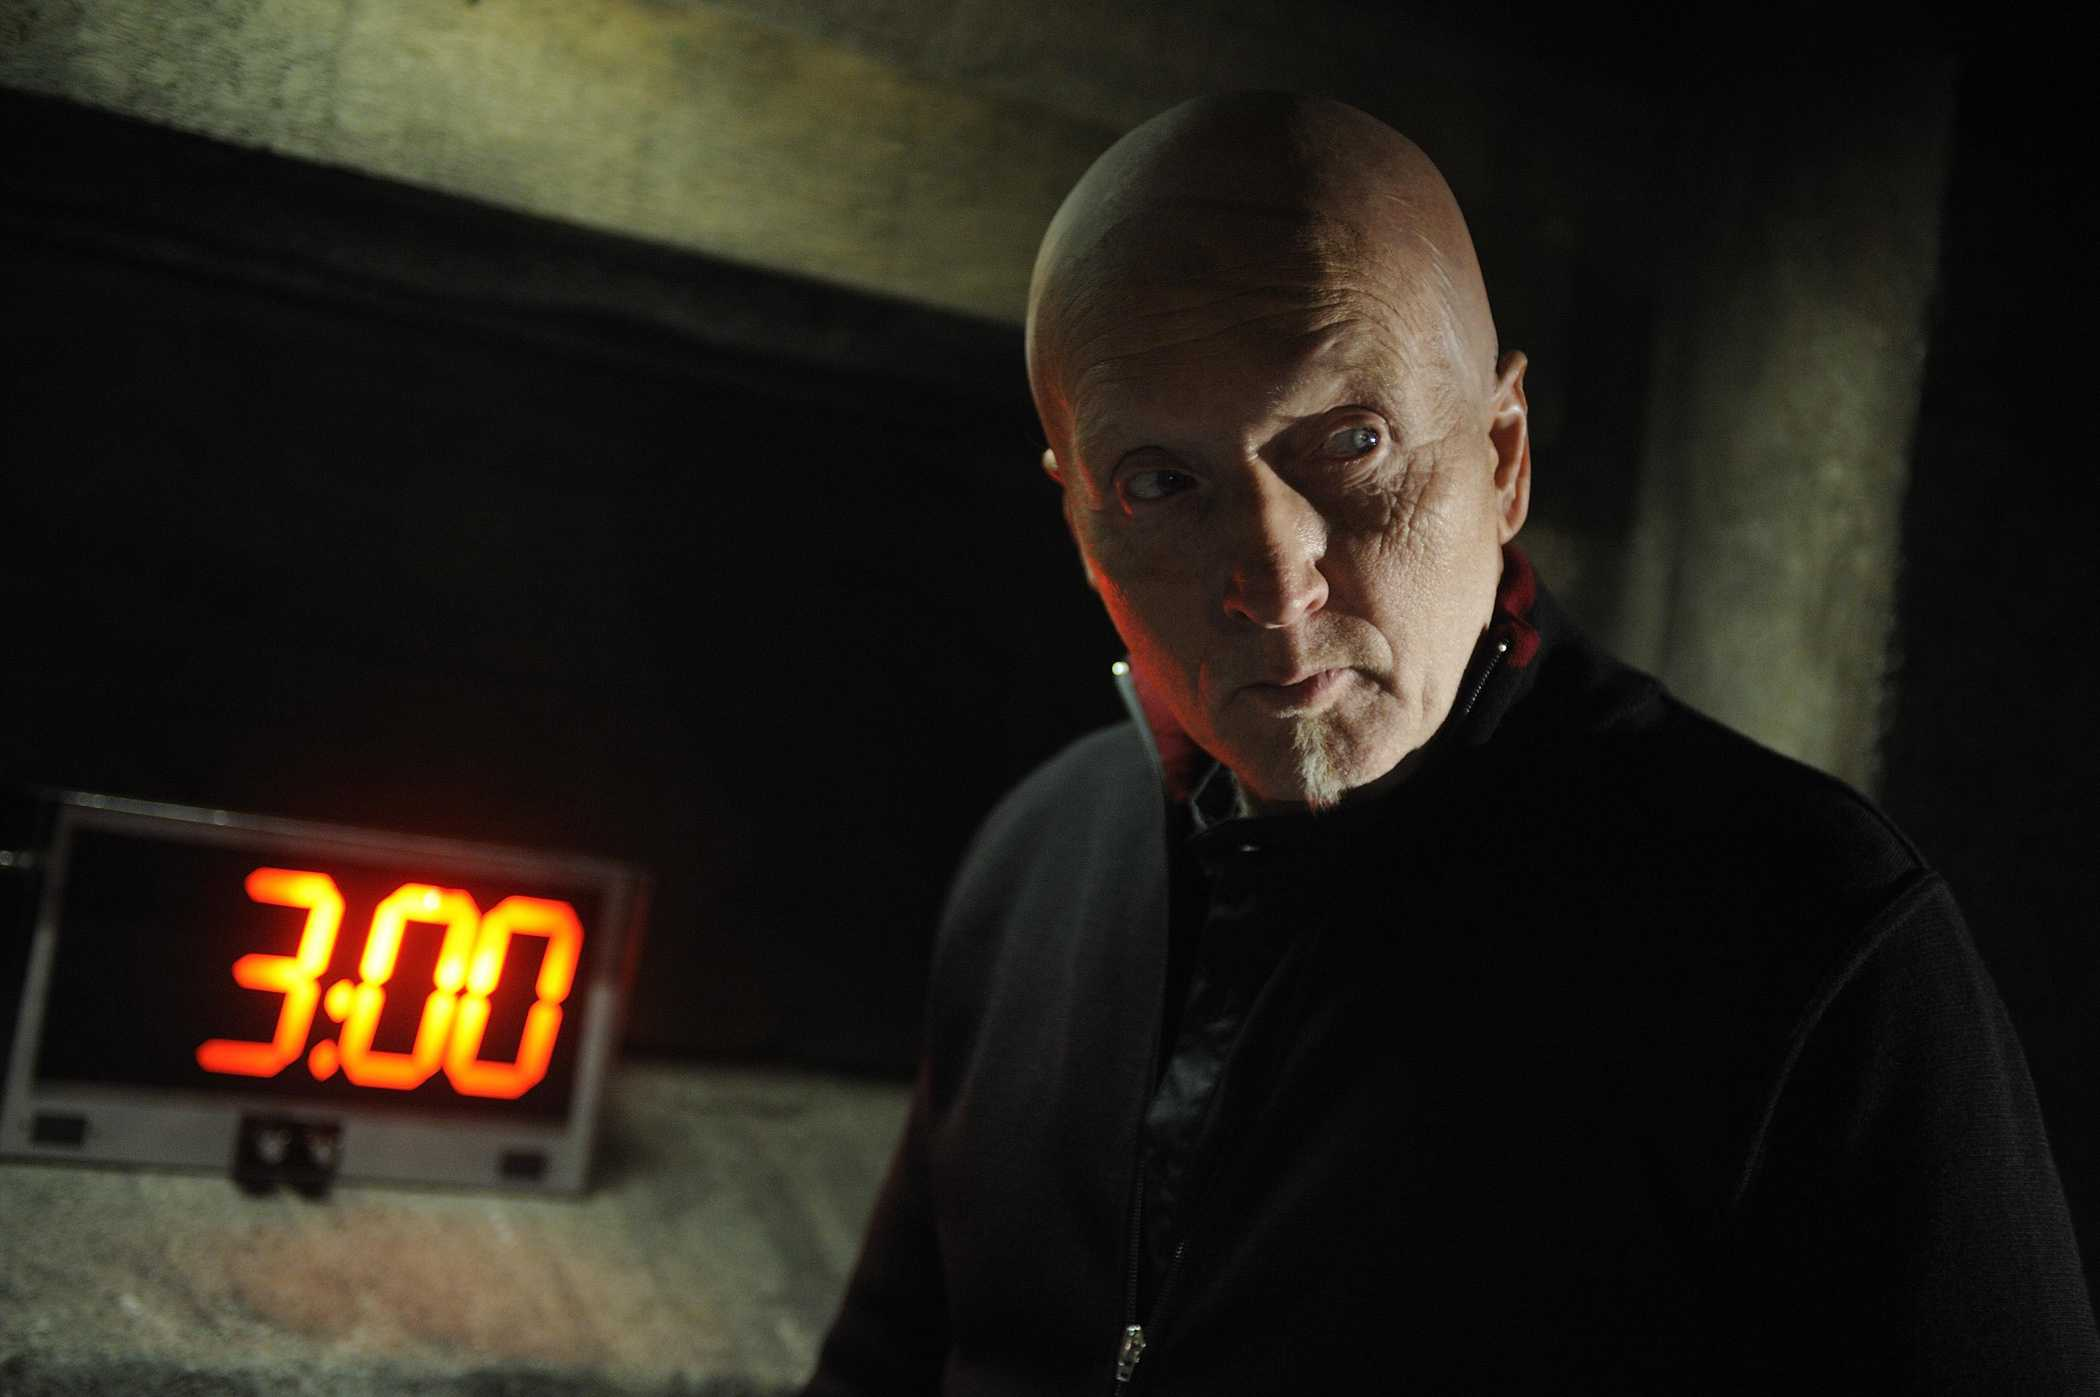 Tobin Bell Widescreen